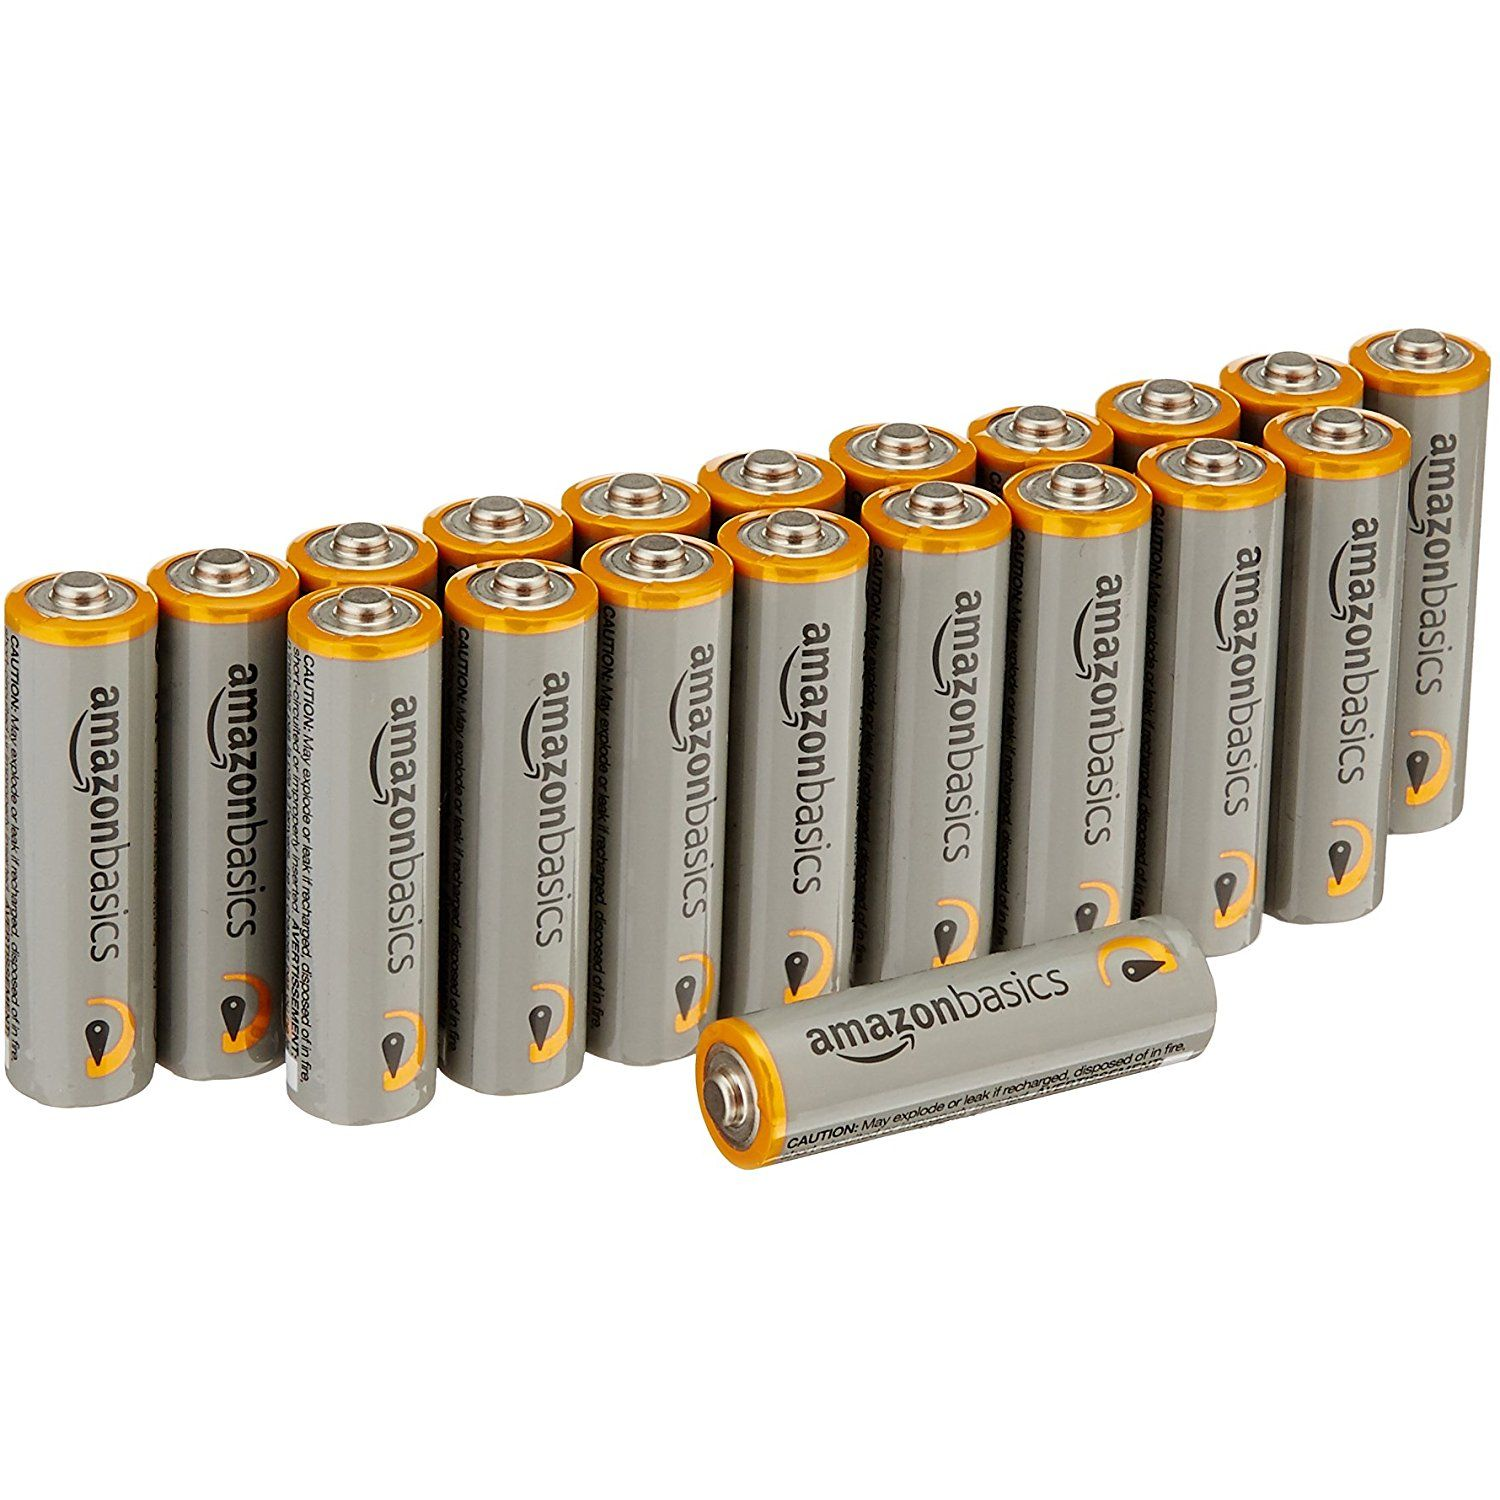 Amazonbasics Aa Performance Alkaline Batteries 20 Pack Packaging May Vary Check Out This G Alkaline Battery Battery Pack Rechargeable Batteries